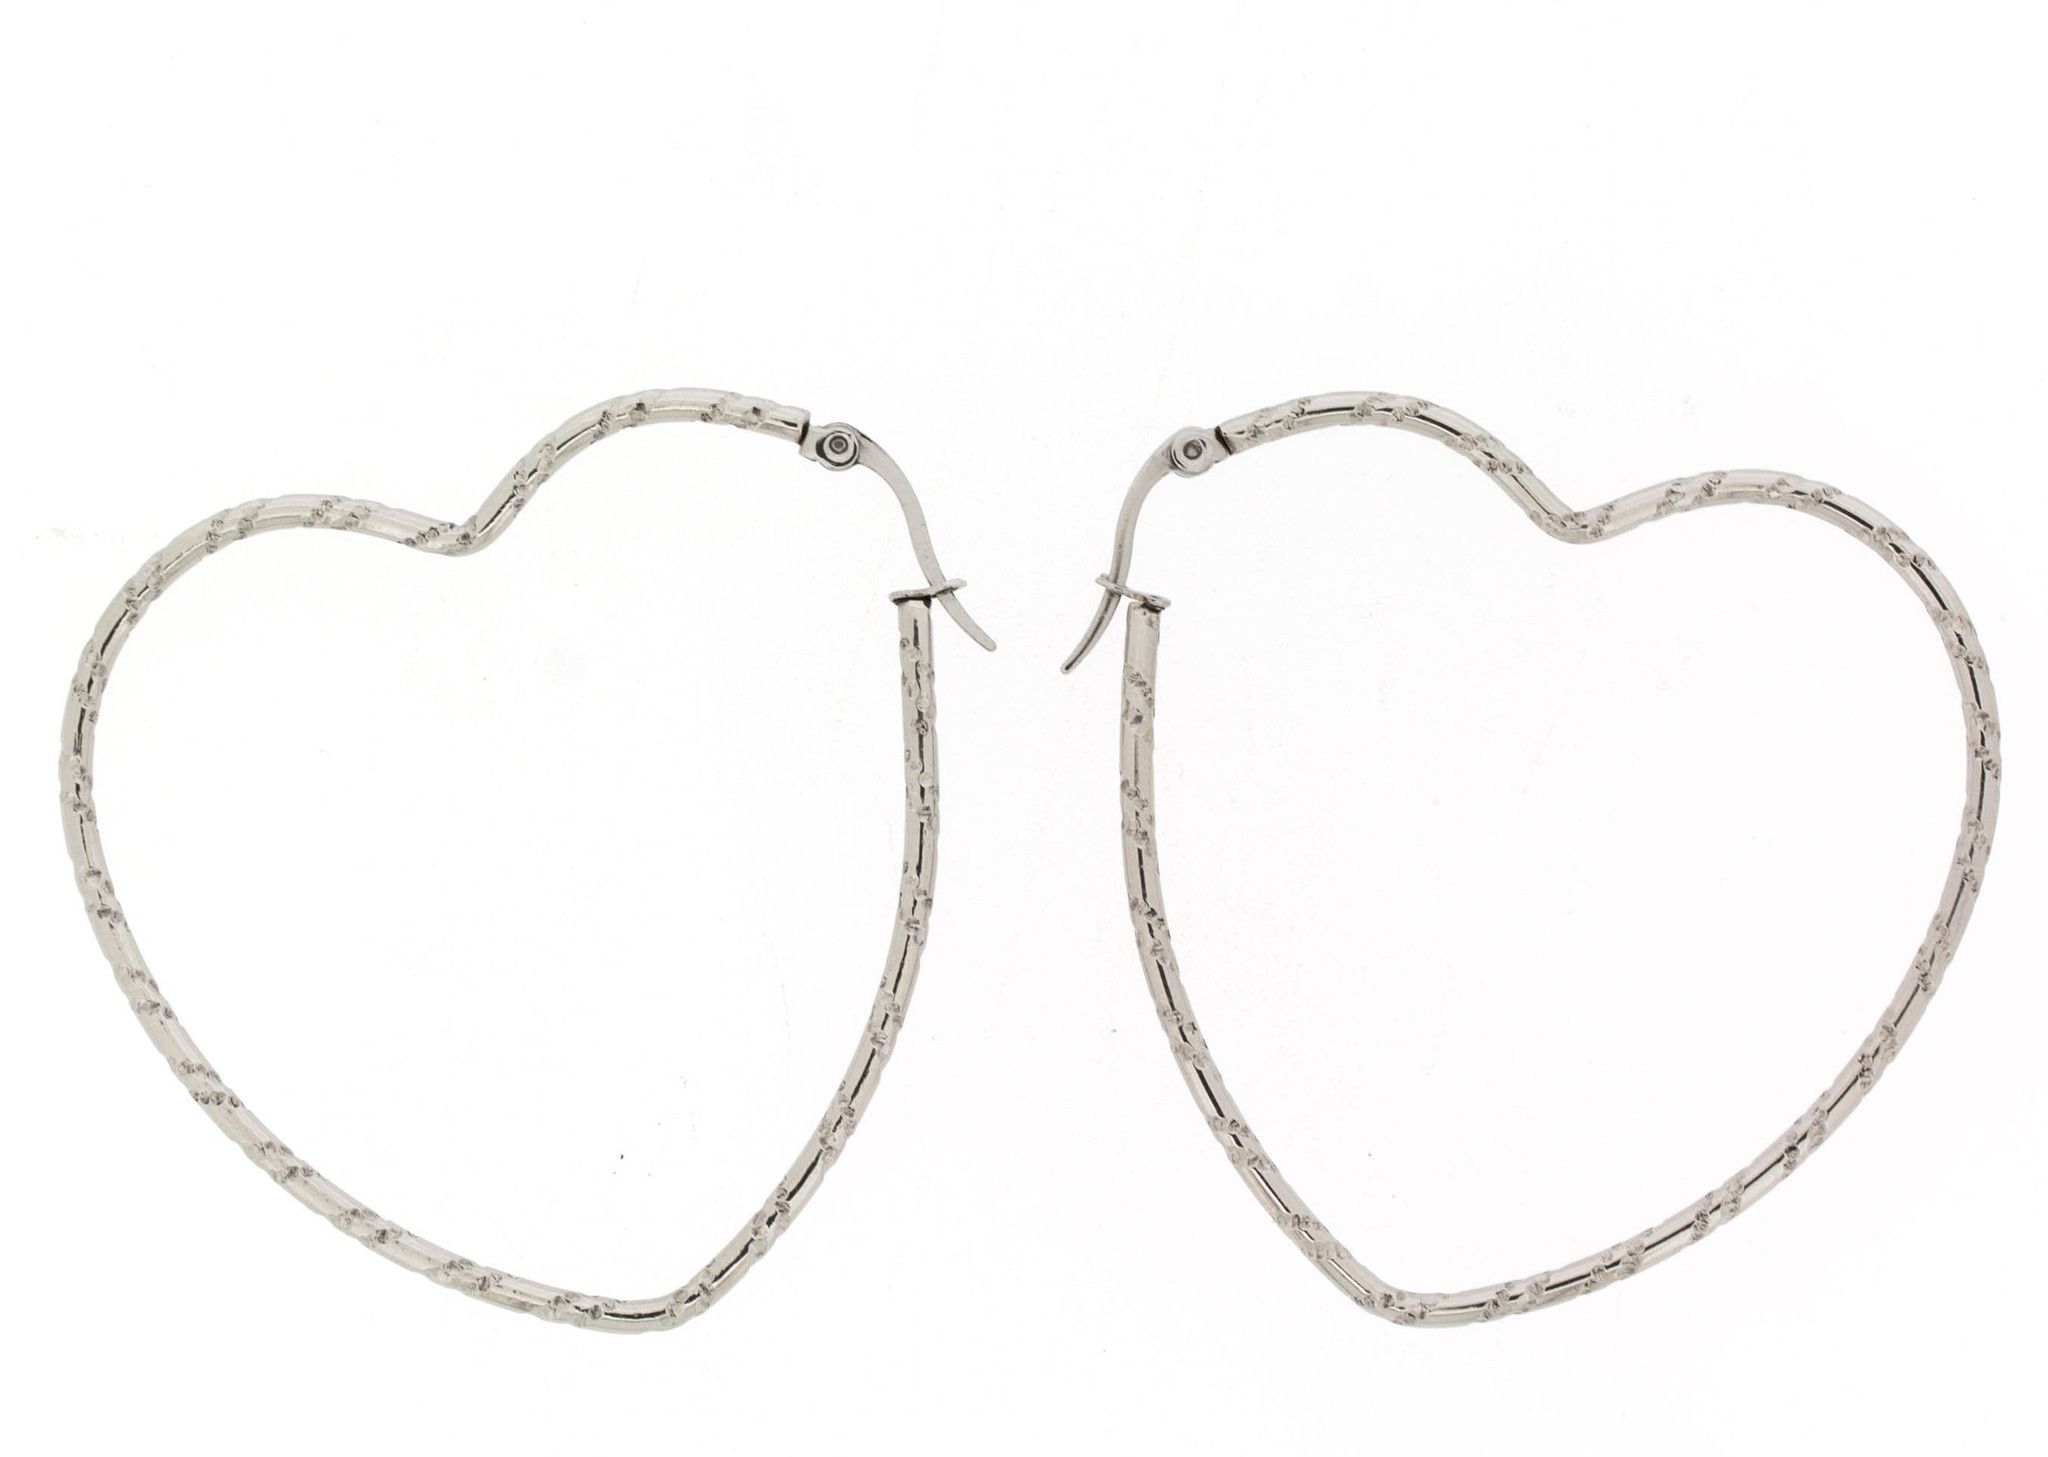 Edforce Stainless Steel Big Heart Hoop Earring (50x51mm)